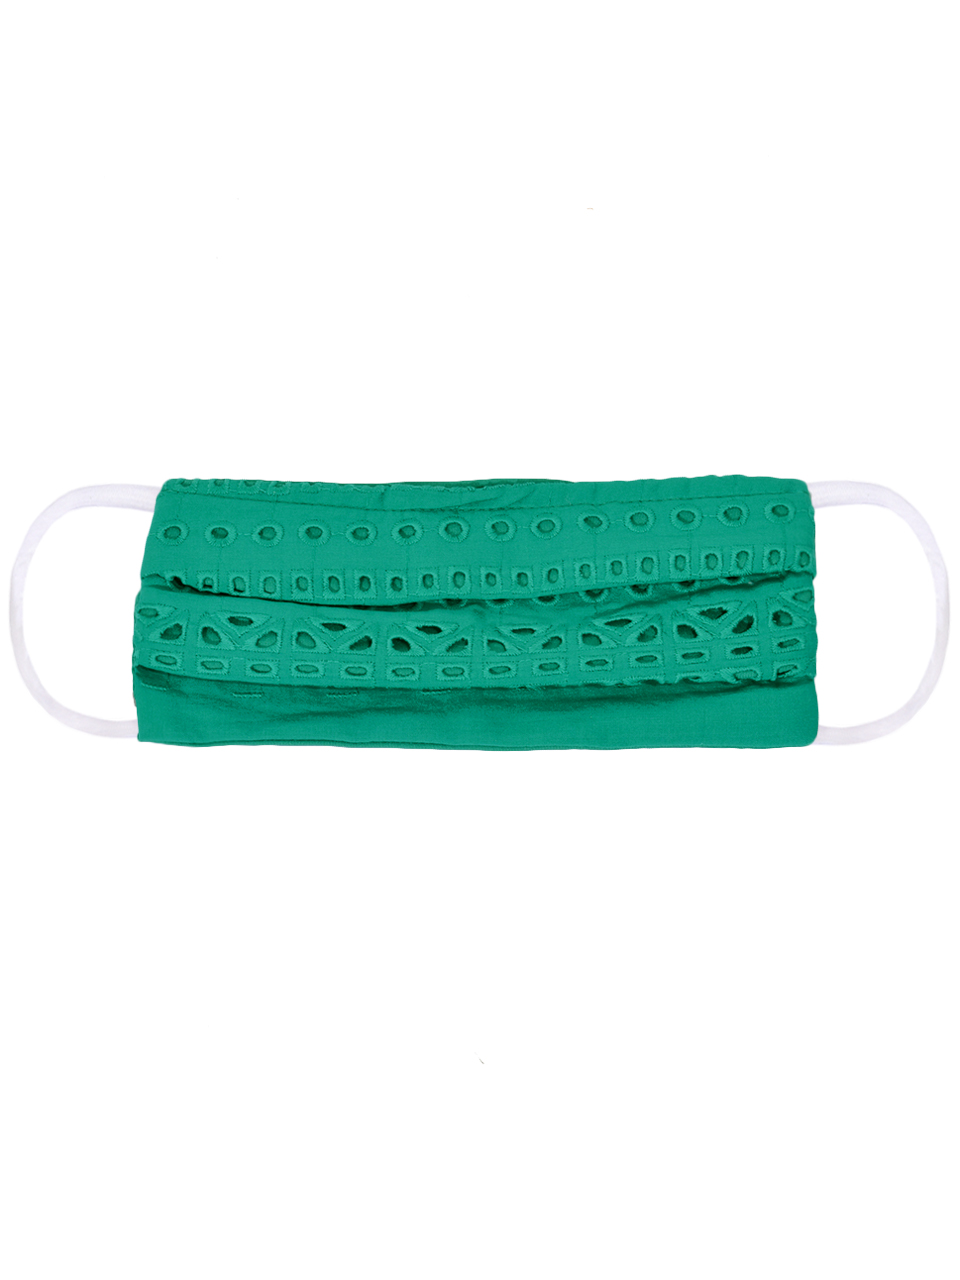 Karina Grimaldi Kelly Eyelet Mask in Green X1https://cdn11.bigcommerce.com/s-3wu6n/products/33238/images/109682/Kelly-Eyelet-Mask-in-Green-2__18064.1590790951.244.365.jpg?c=2x2